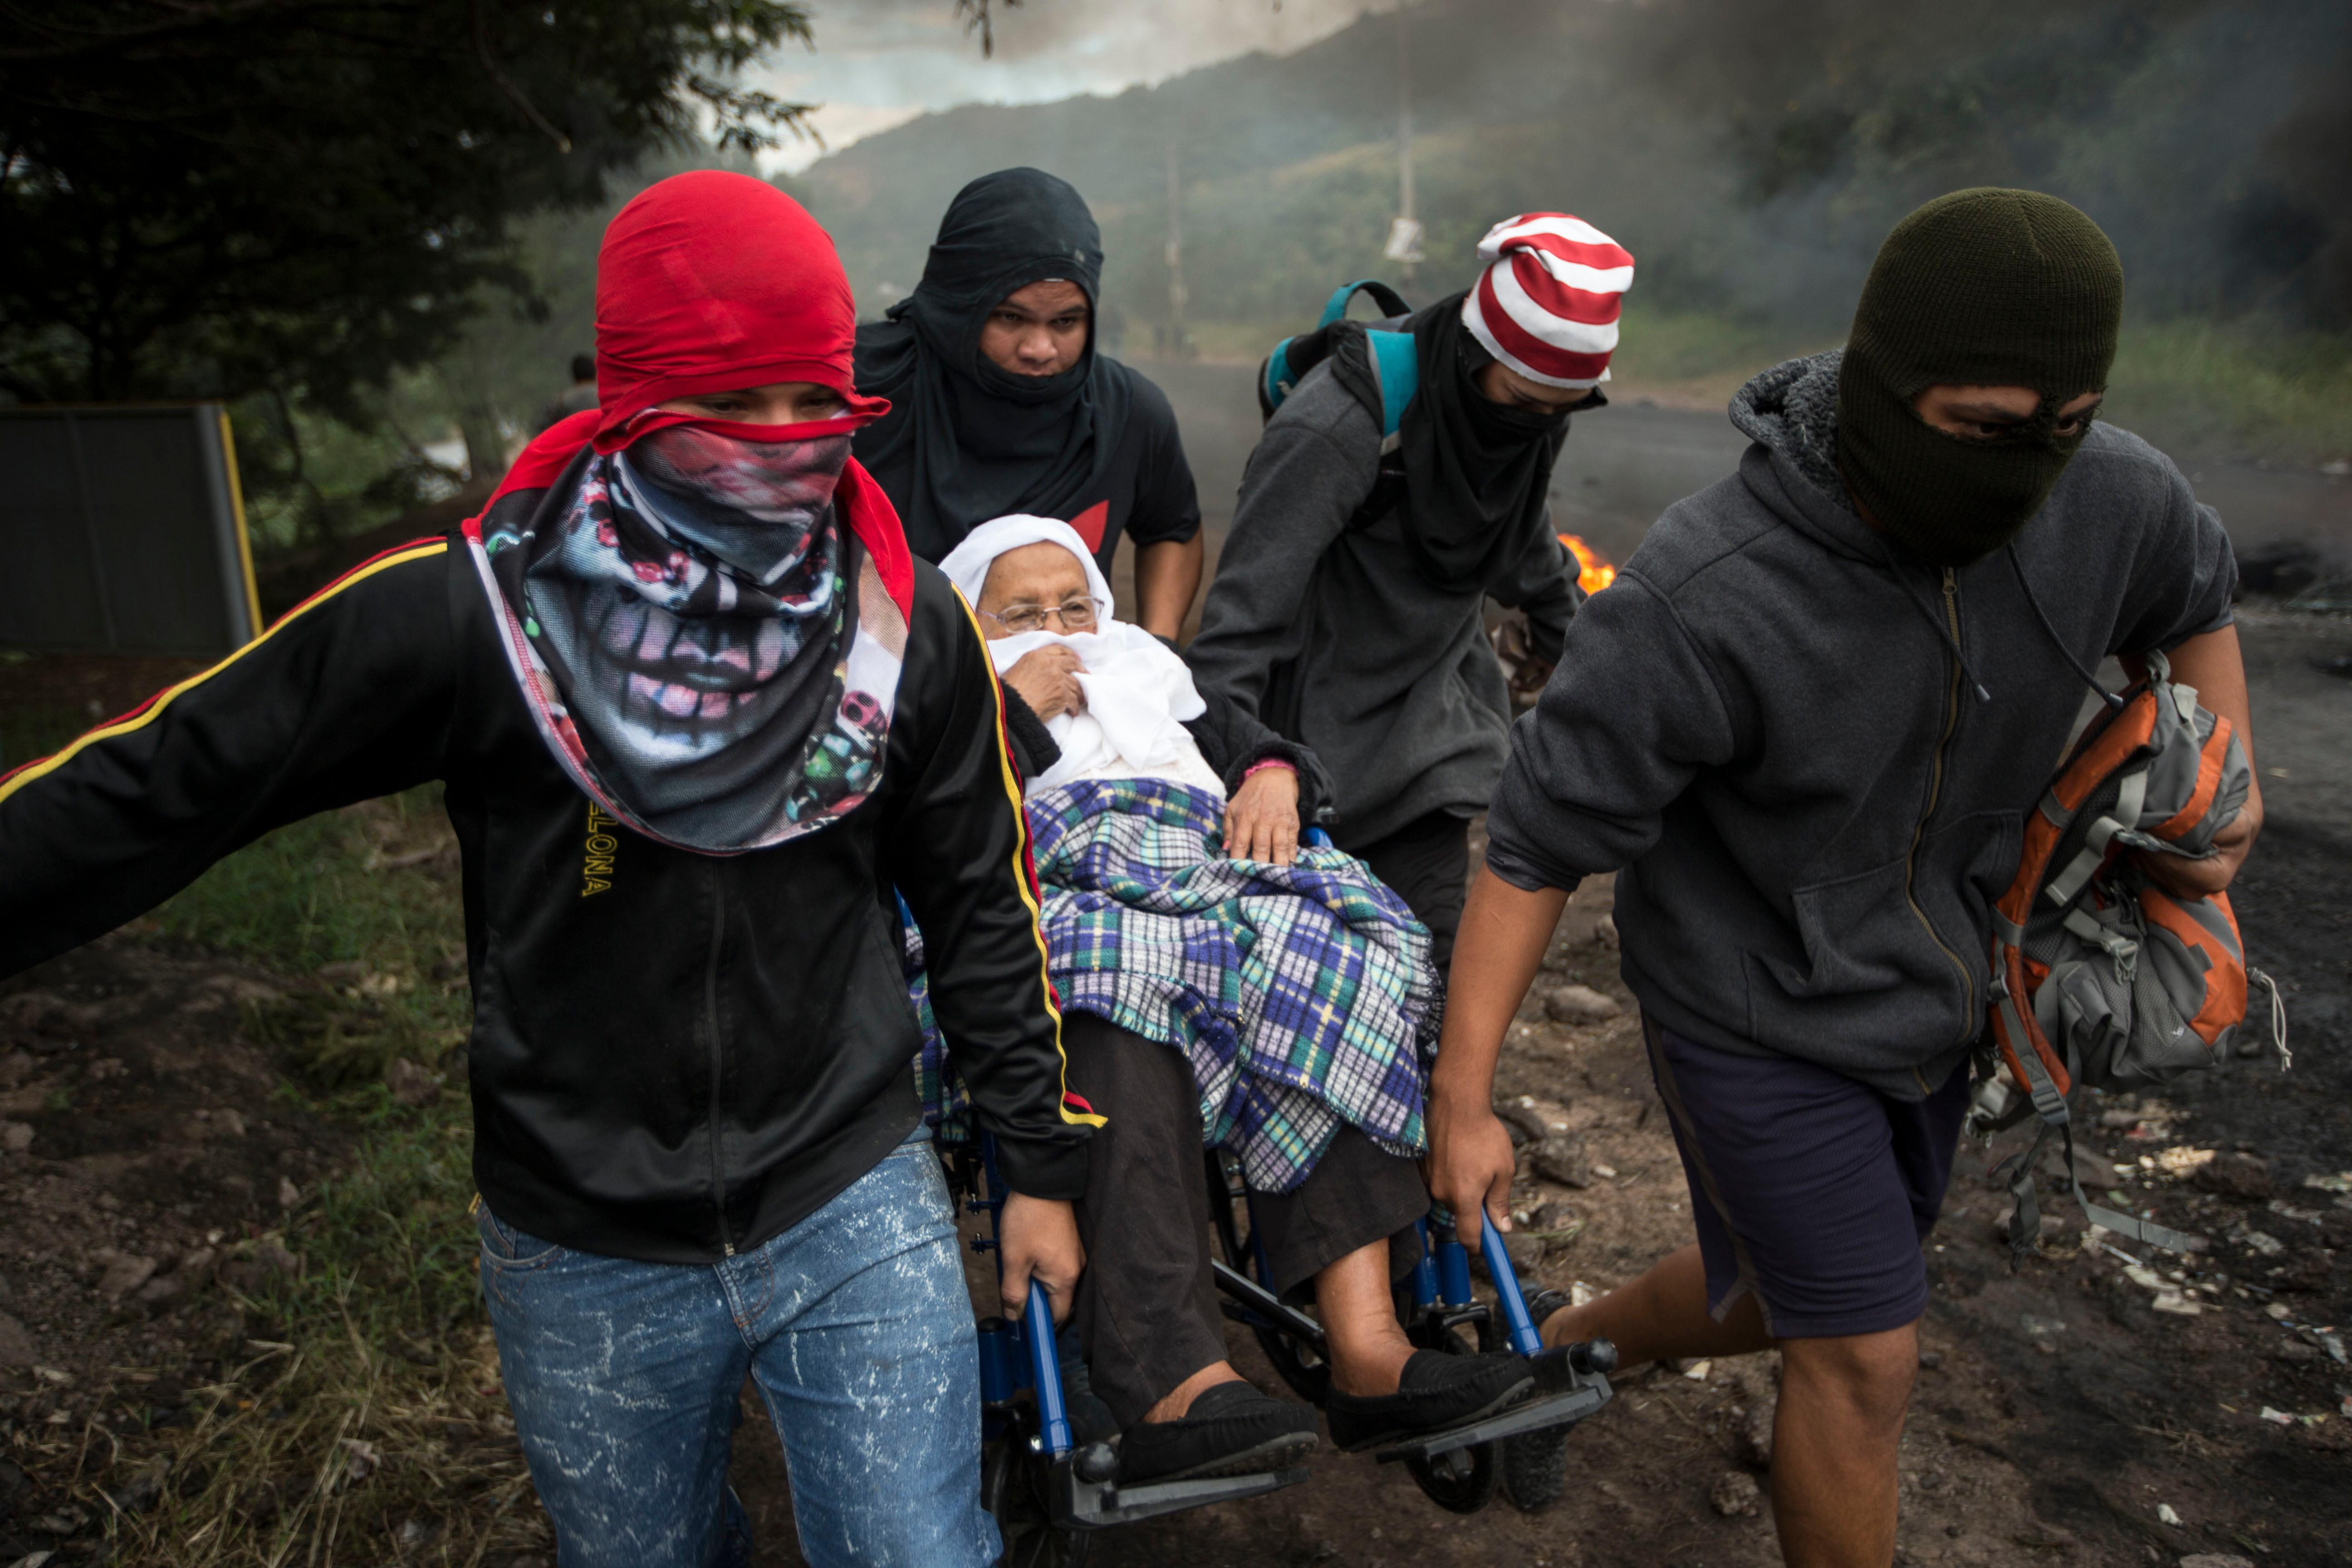 Anti-government demonstrators help a woman in a wheelchair get past a burning barricade they erected to block the road to Valle de los Angeles, on the outskirts of Tegucigalpa, Honduras, Thursday, Dec. 7, 2017. Eight Latin American governments on Wednesday applauded Honduras' willingness to recount disputed votes in the presidential elections, but questions remain about how thorough that recount will be. (AP Photo/Moises Castillo)